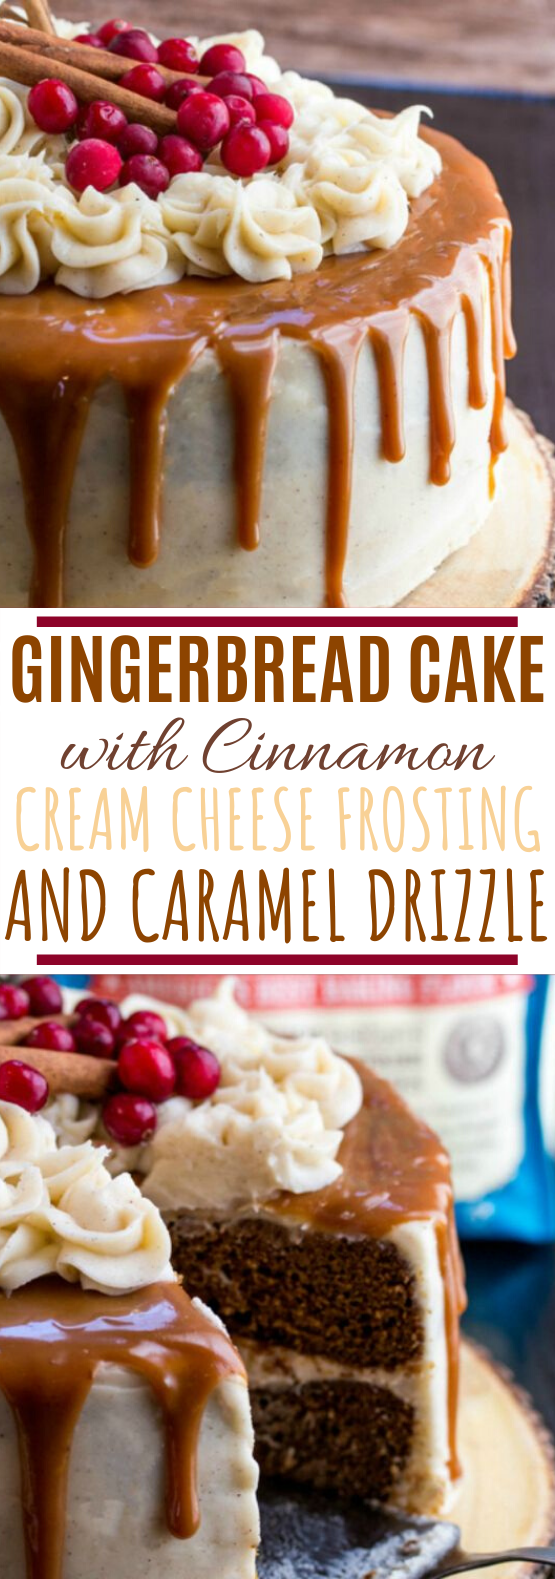 Gingerbread Cake with Cinnamon Cream Cheese Frosting #cakes #desserts #baking #christmas #holiday